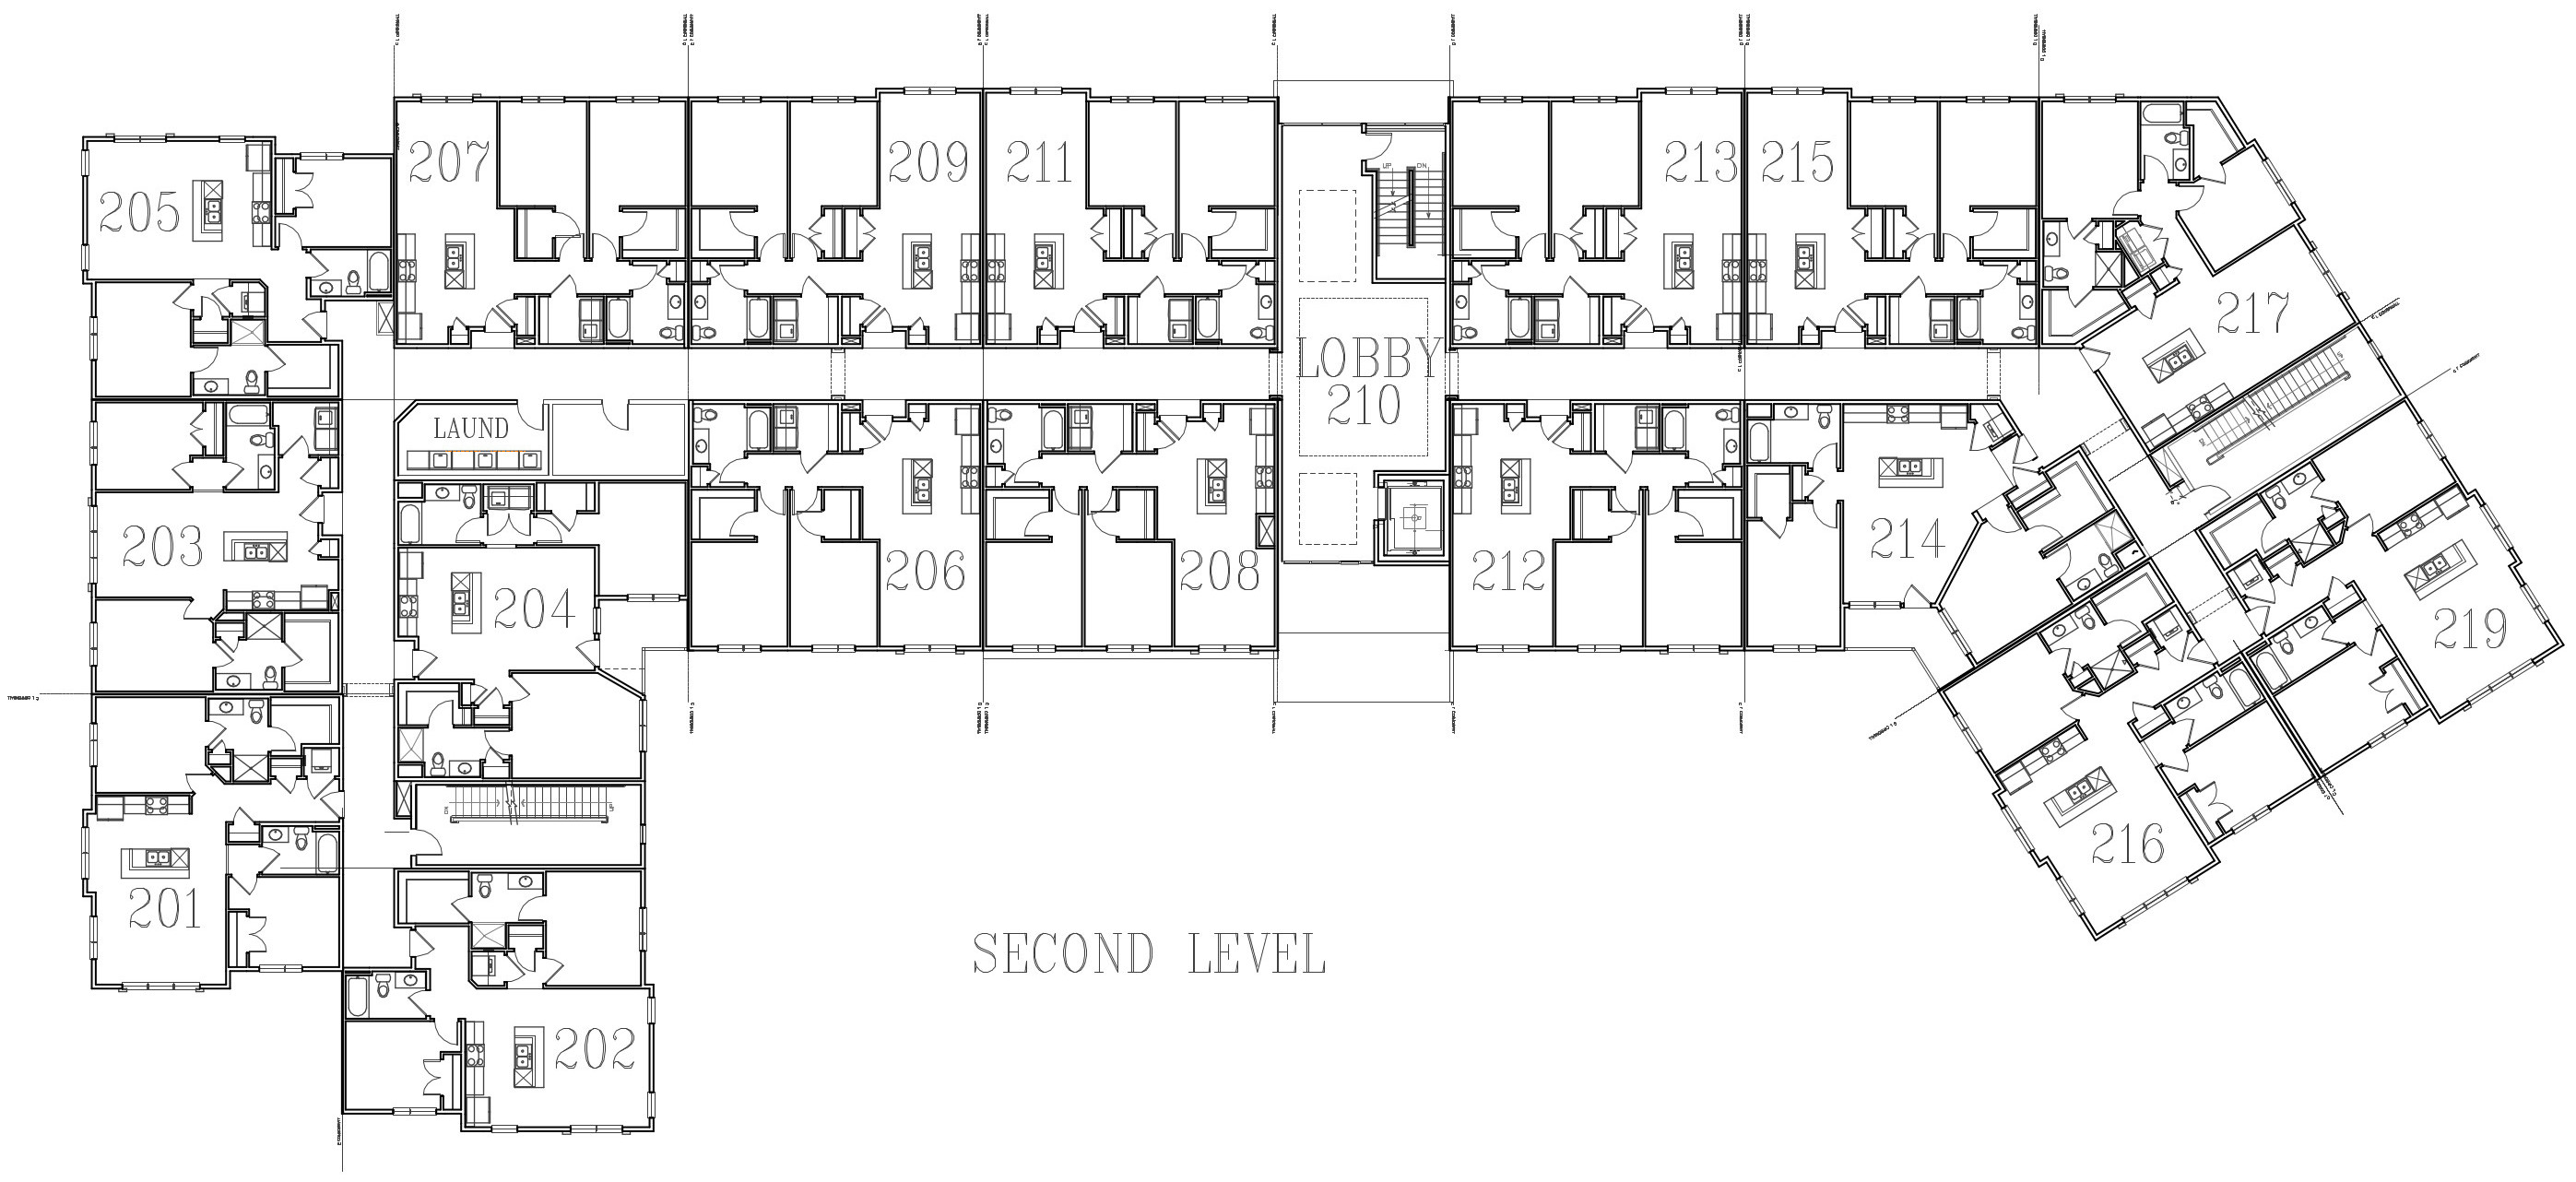 Image of building layout for second floor.